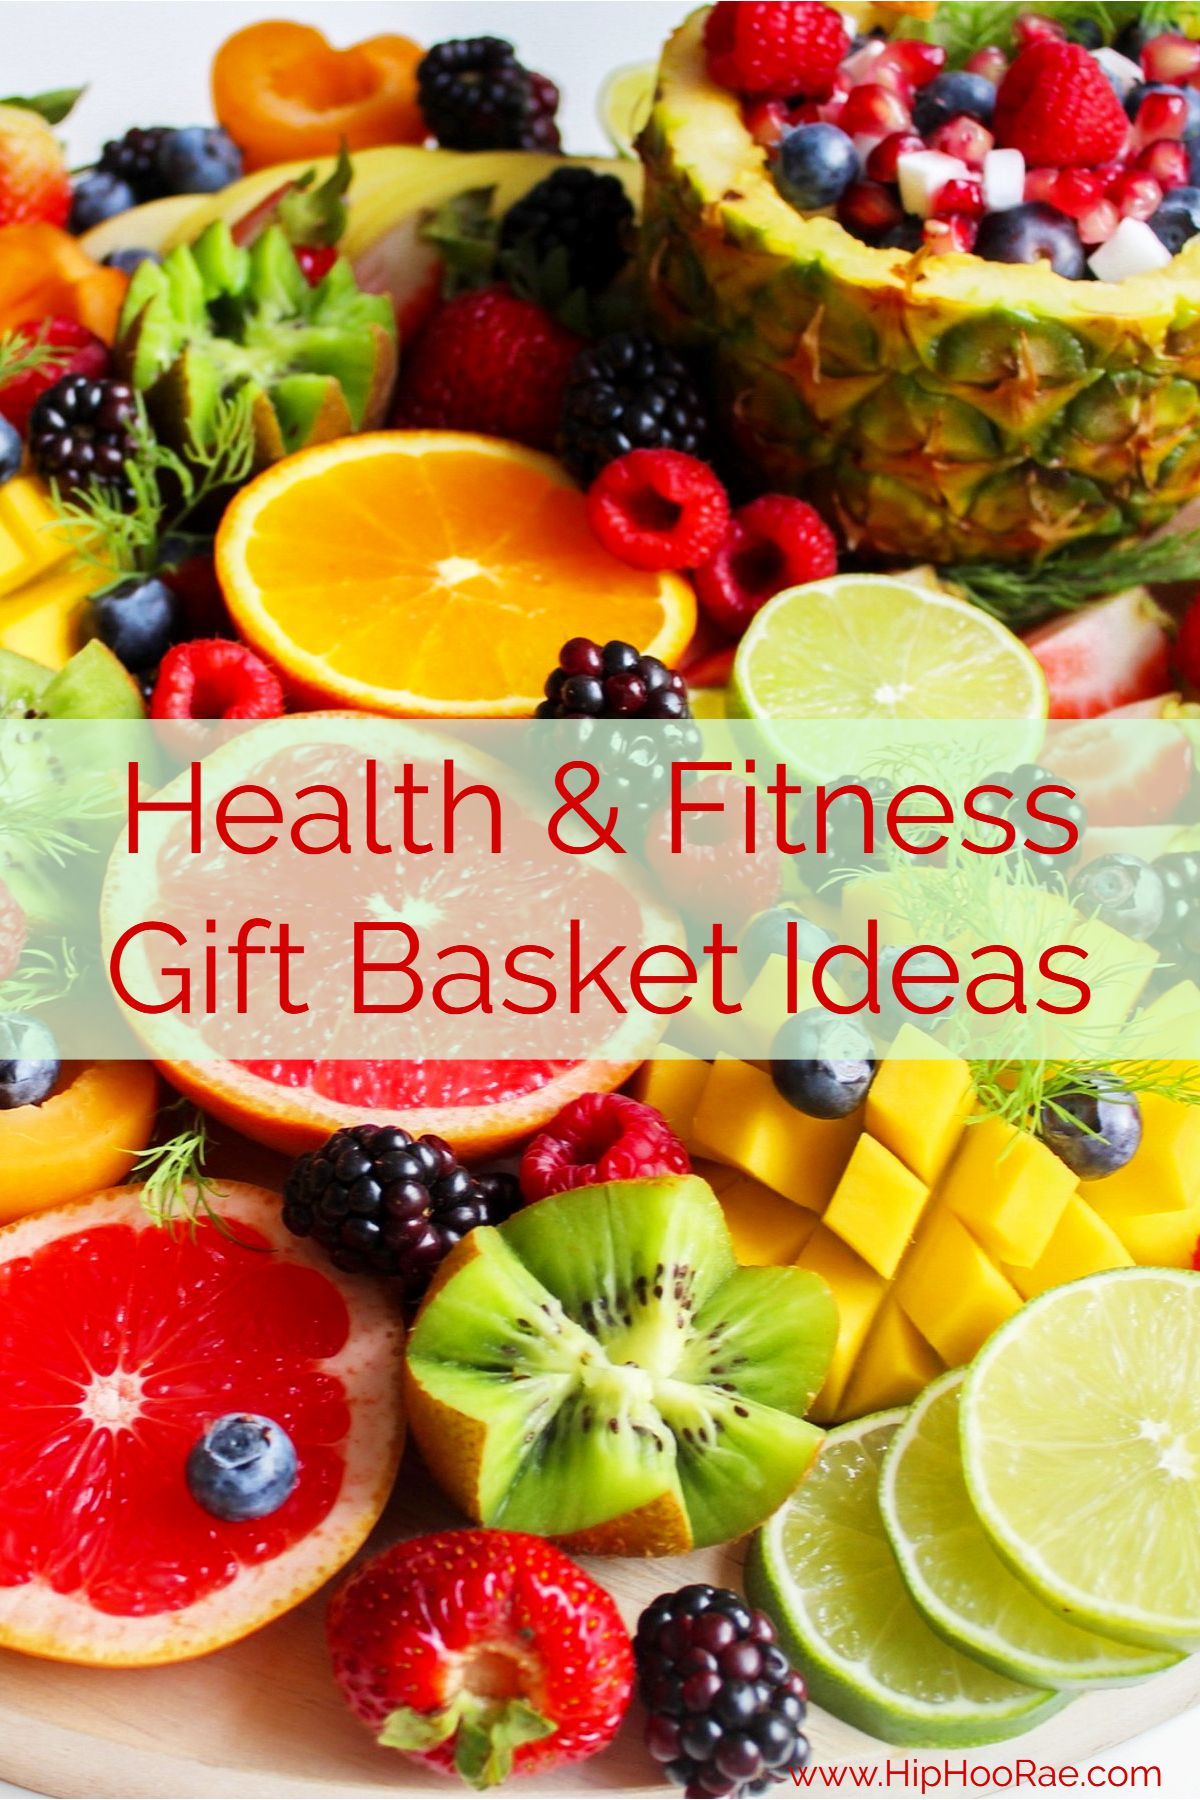 Best Health and Fitness Gift Basket Ideas (September 2018 ...